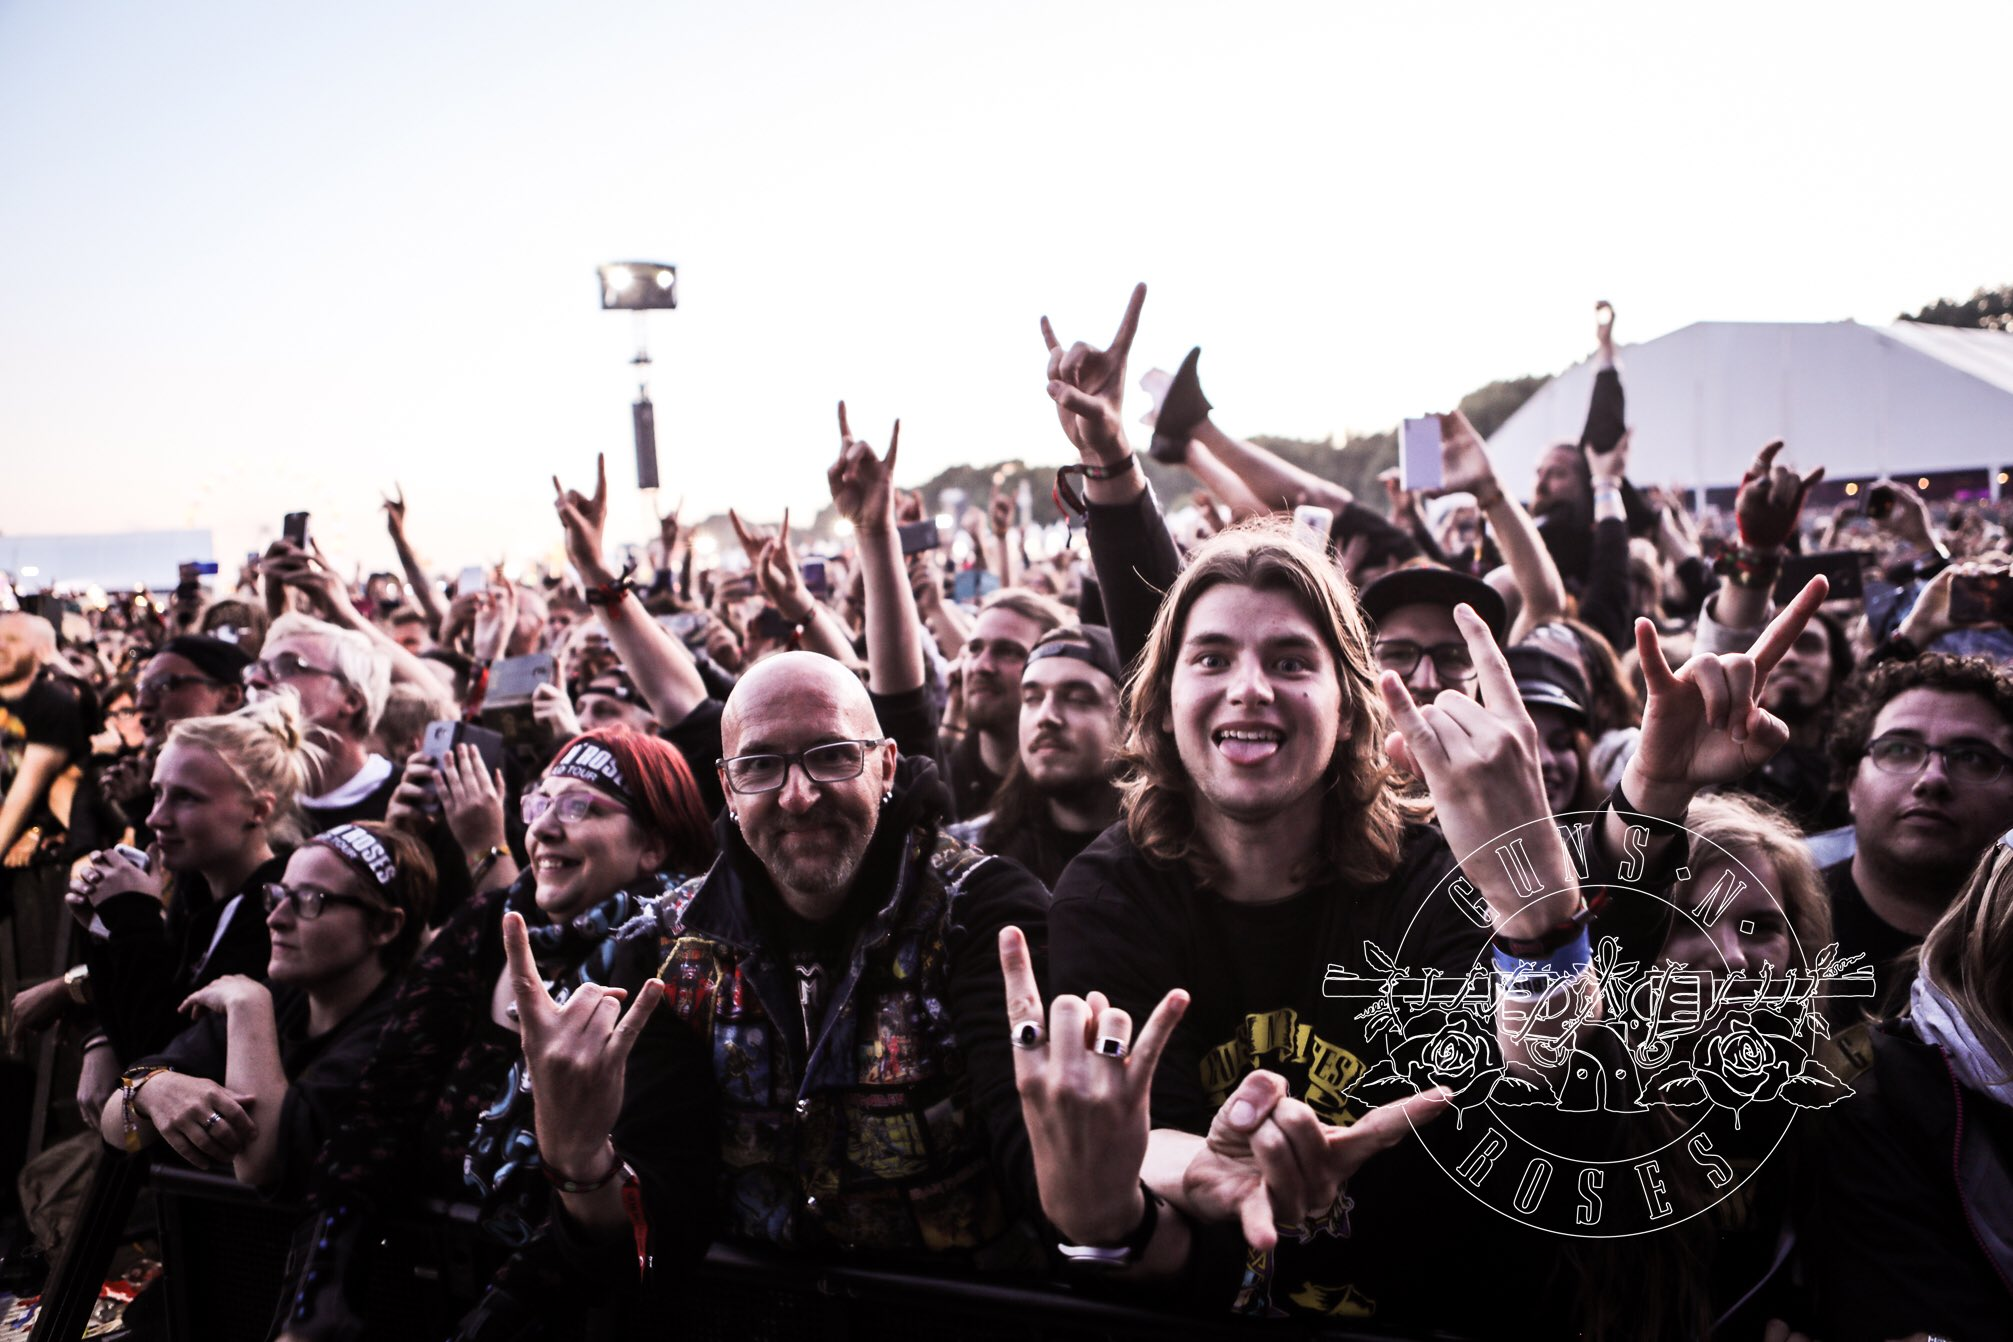 Belgium! Tweet your photos from the show tonight using #GNRatGraspop and we'll retweet some of our favorites... https://t.co/qOLtdwYG8D